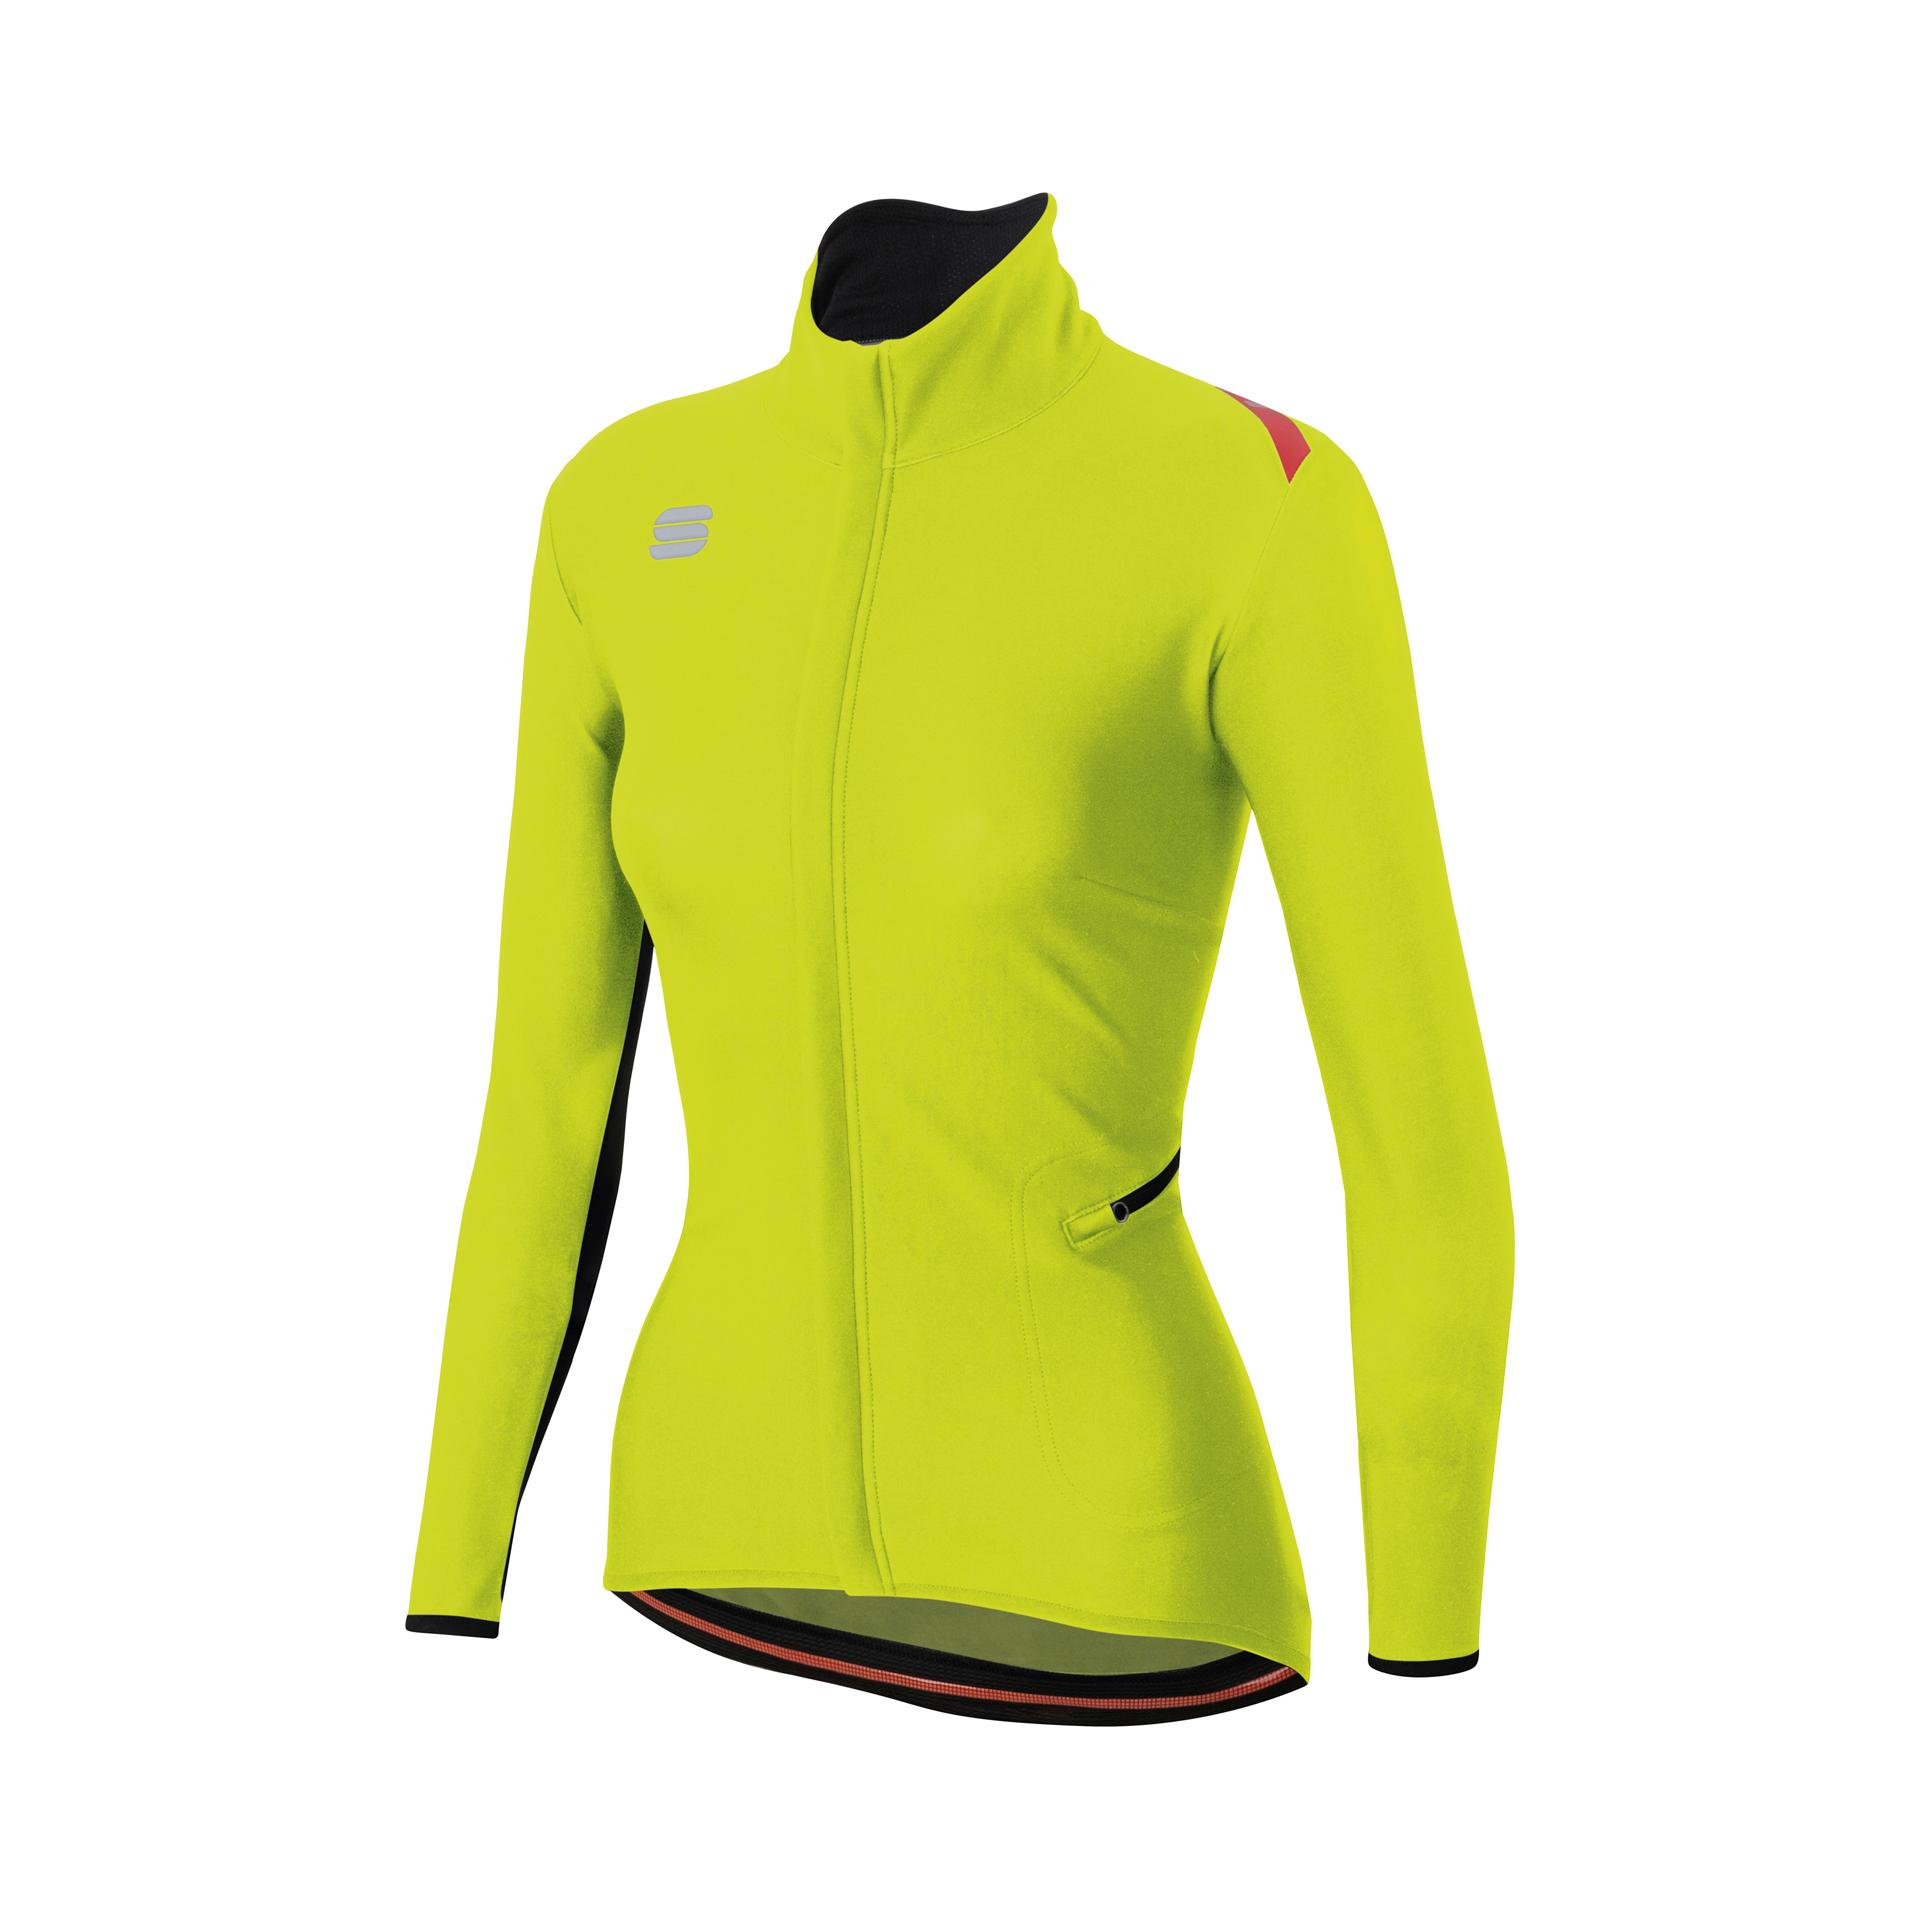 Afbeelding Sportful Fietsjack Dames fluo / SF Fiandre Light Ws W Jacket-Yellow Fluo/Black